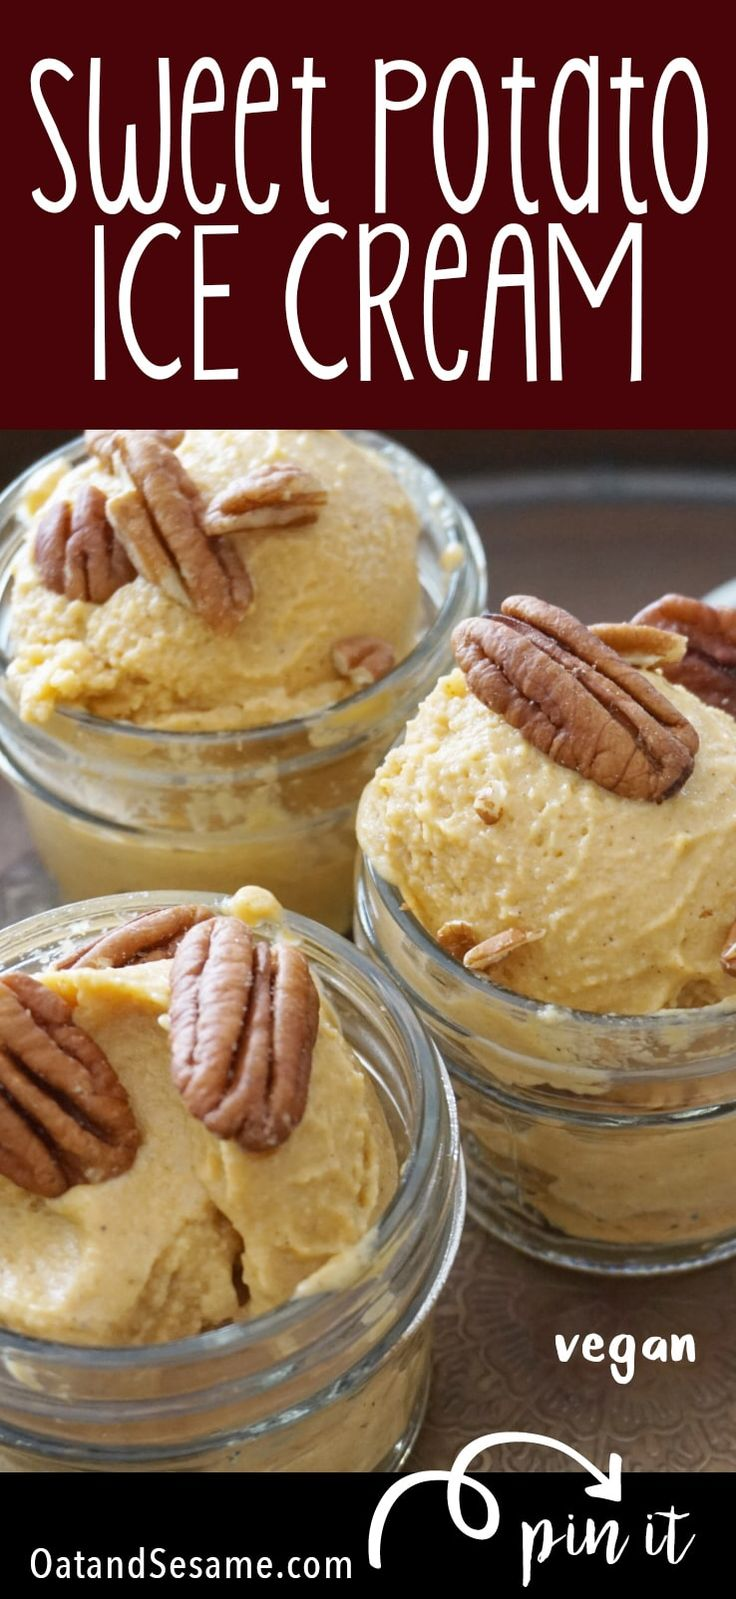 Sweet Potato Ice Cream - it's just like pie and dairy free! Try it with purple sweet potatoes for a purple ice cream! | #VEGAN | #HEALTHY #DESSERTS | #Recipes at OatandSesame.com